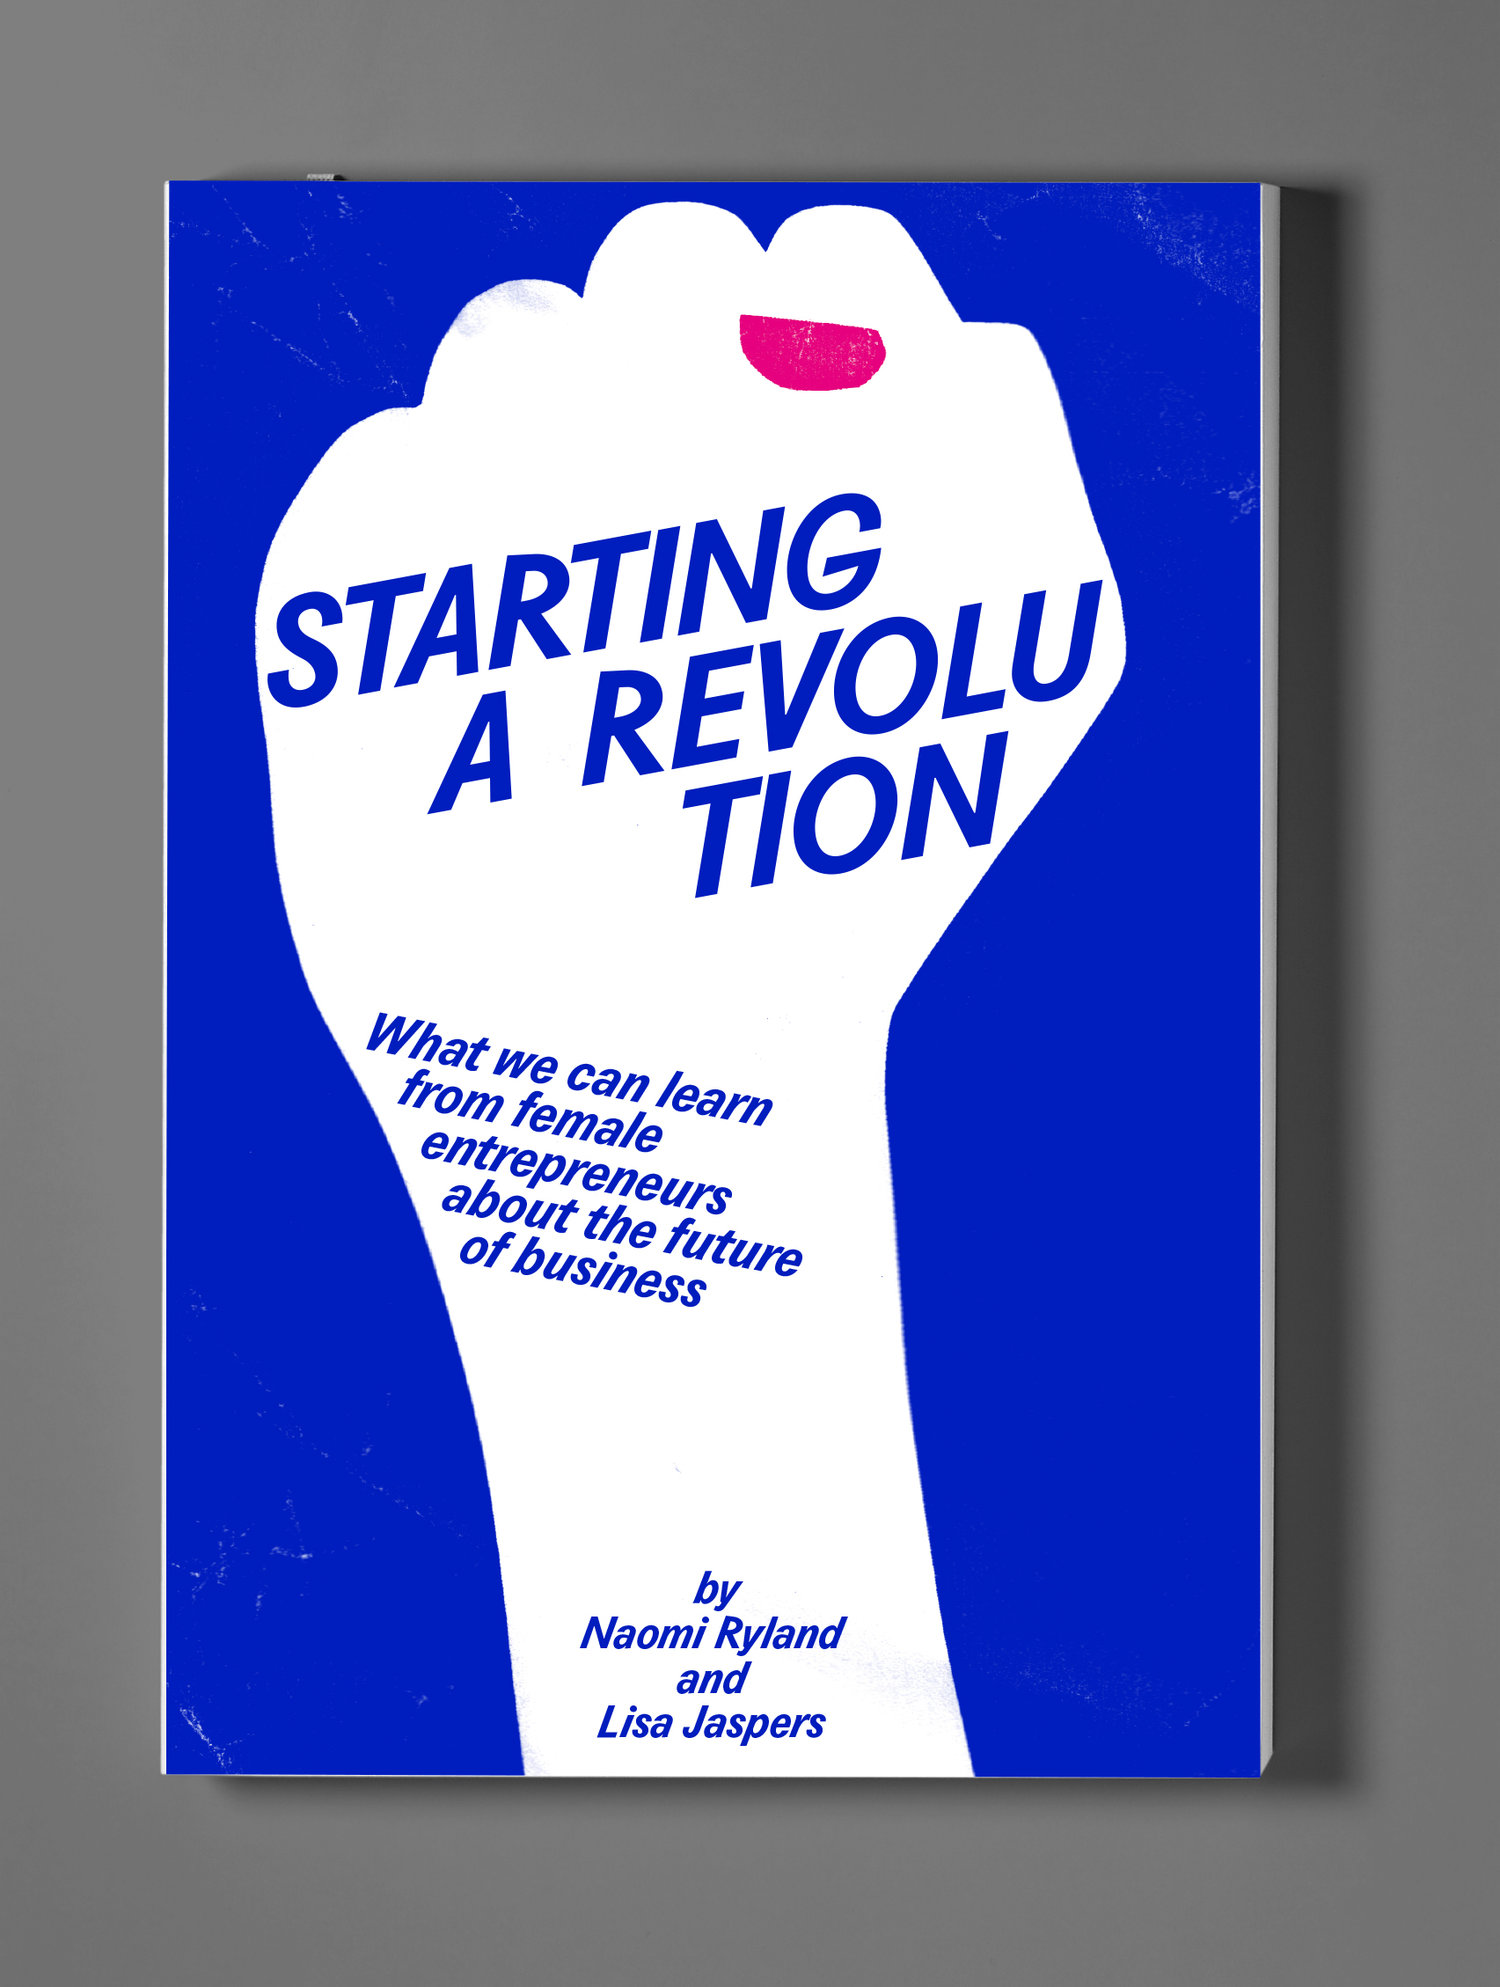 Starting a Revolution - The Book